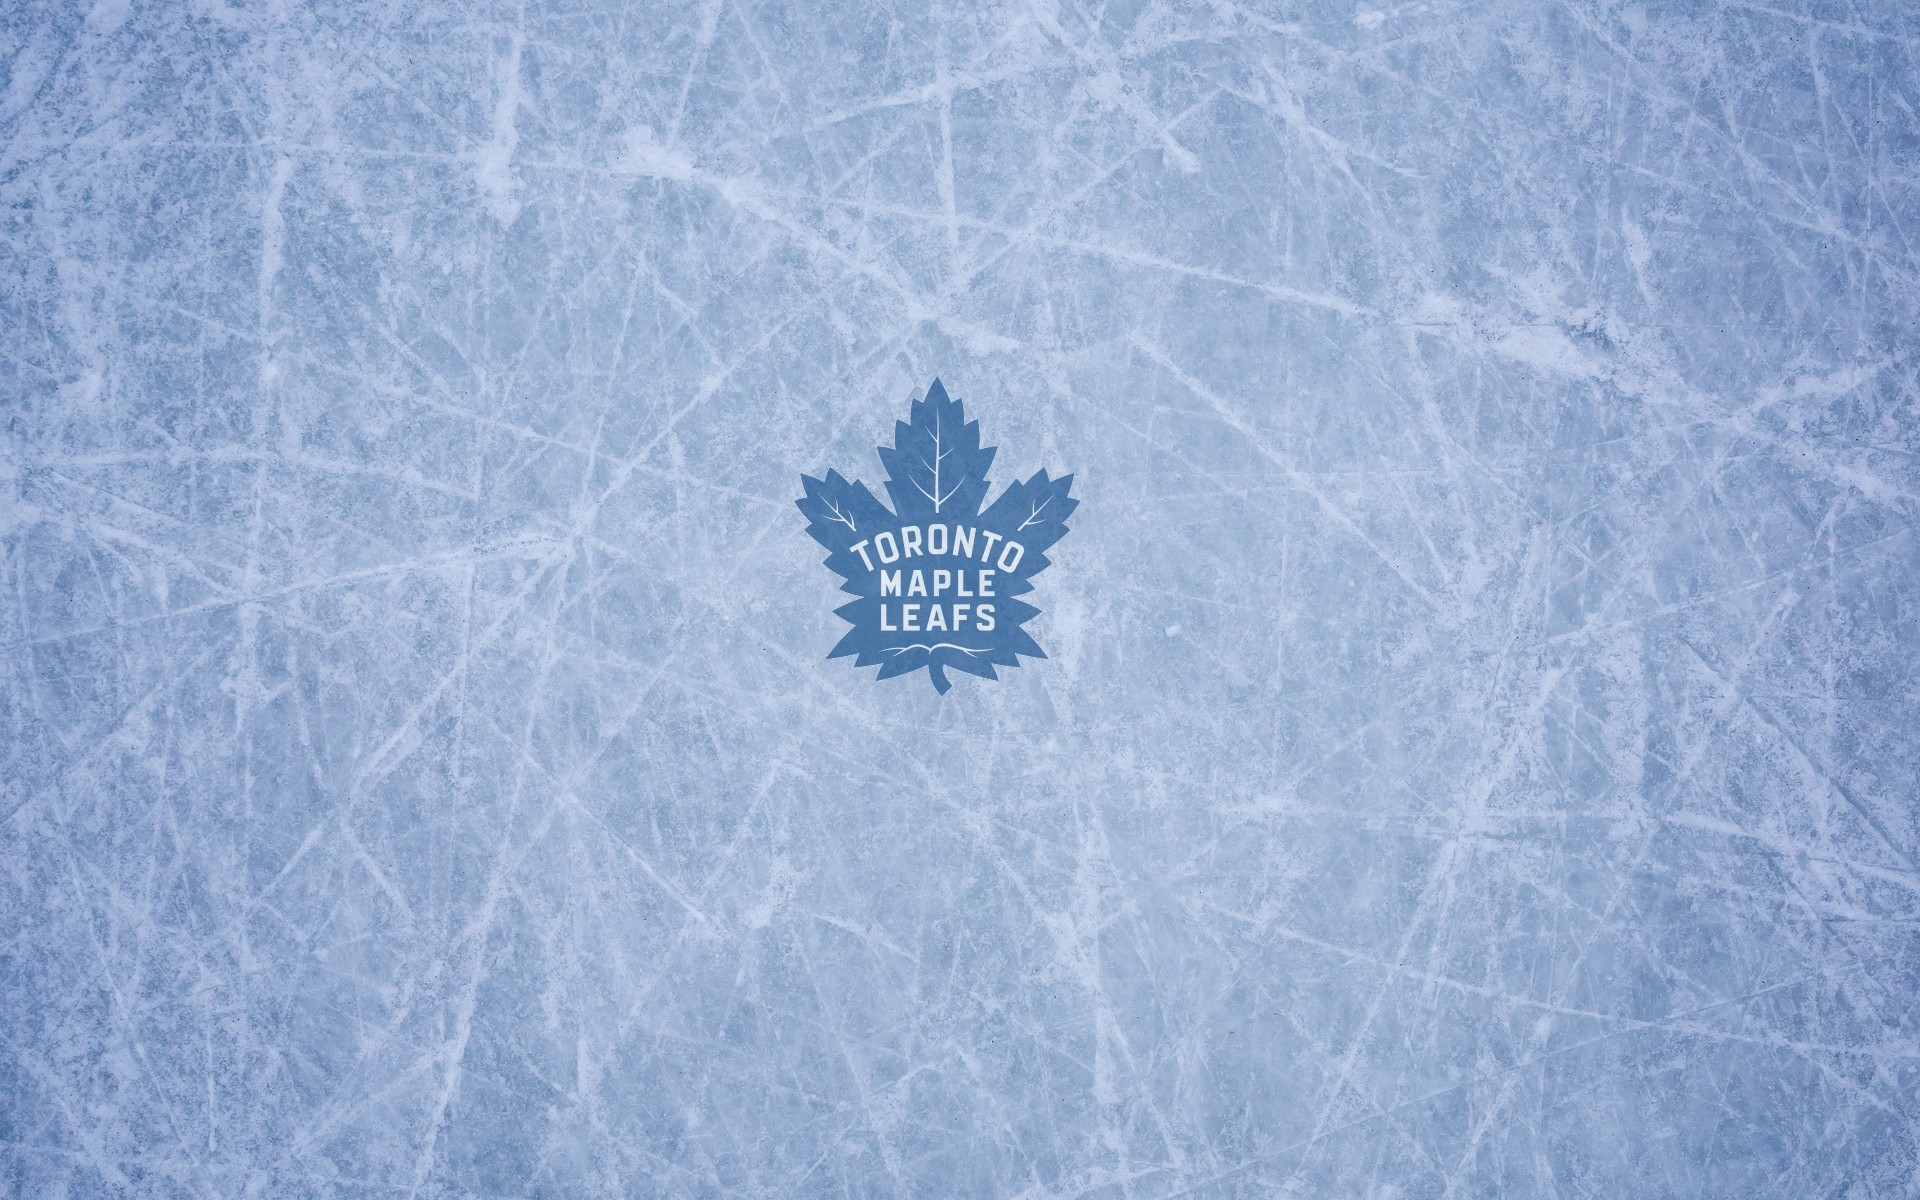 Toronto Maple Leafs wallpaper with ice and logo, 1920×1200